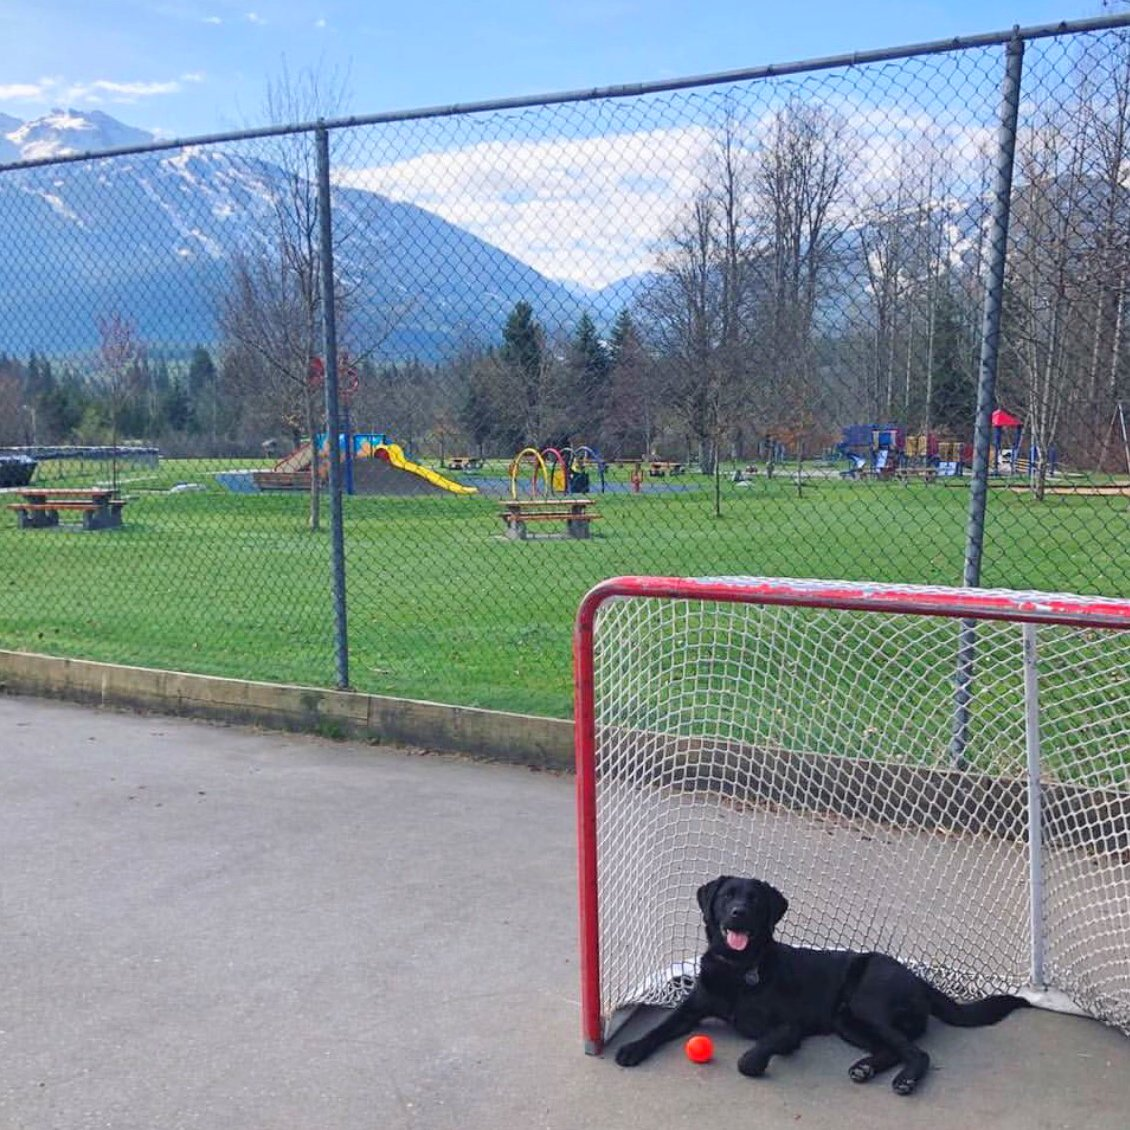 test Twitter Media - Happiness is a #longweekend and a friend in net. Make the most of it, get out and play, 🇨🇦! https://t.co/Xxu8PQXqrO